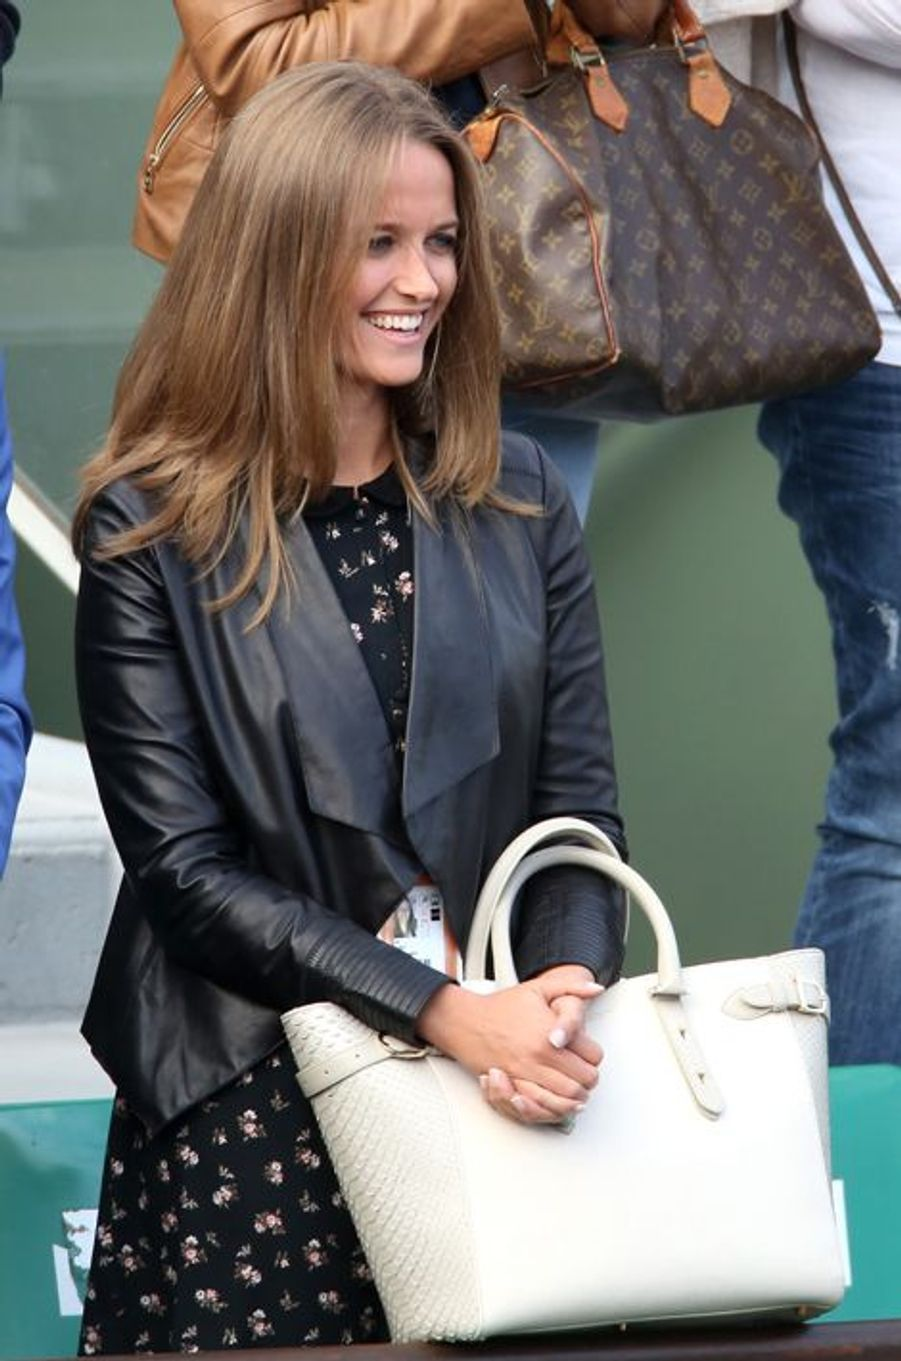 Kim Sears, compagne d'Andy Murray